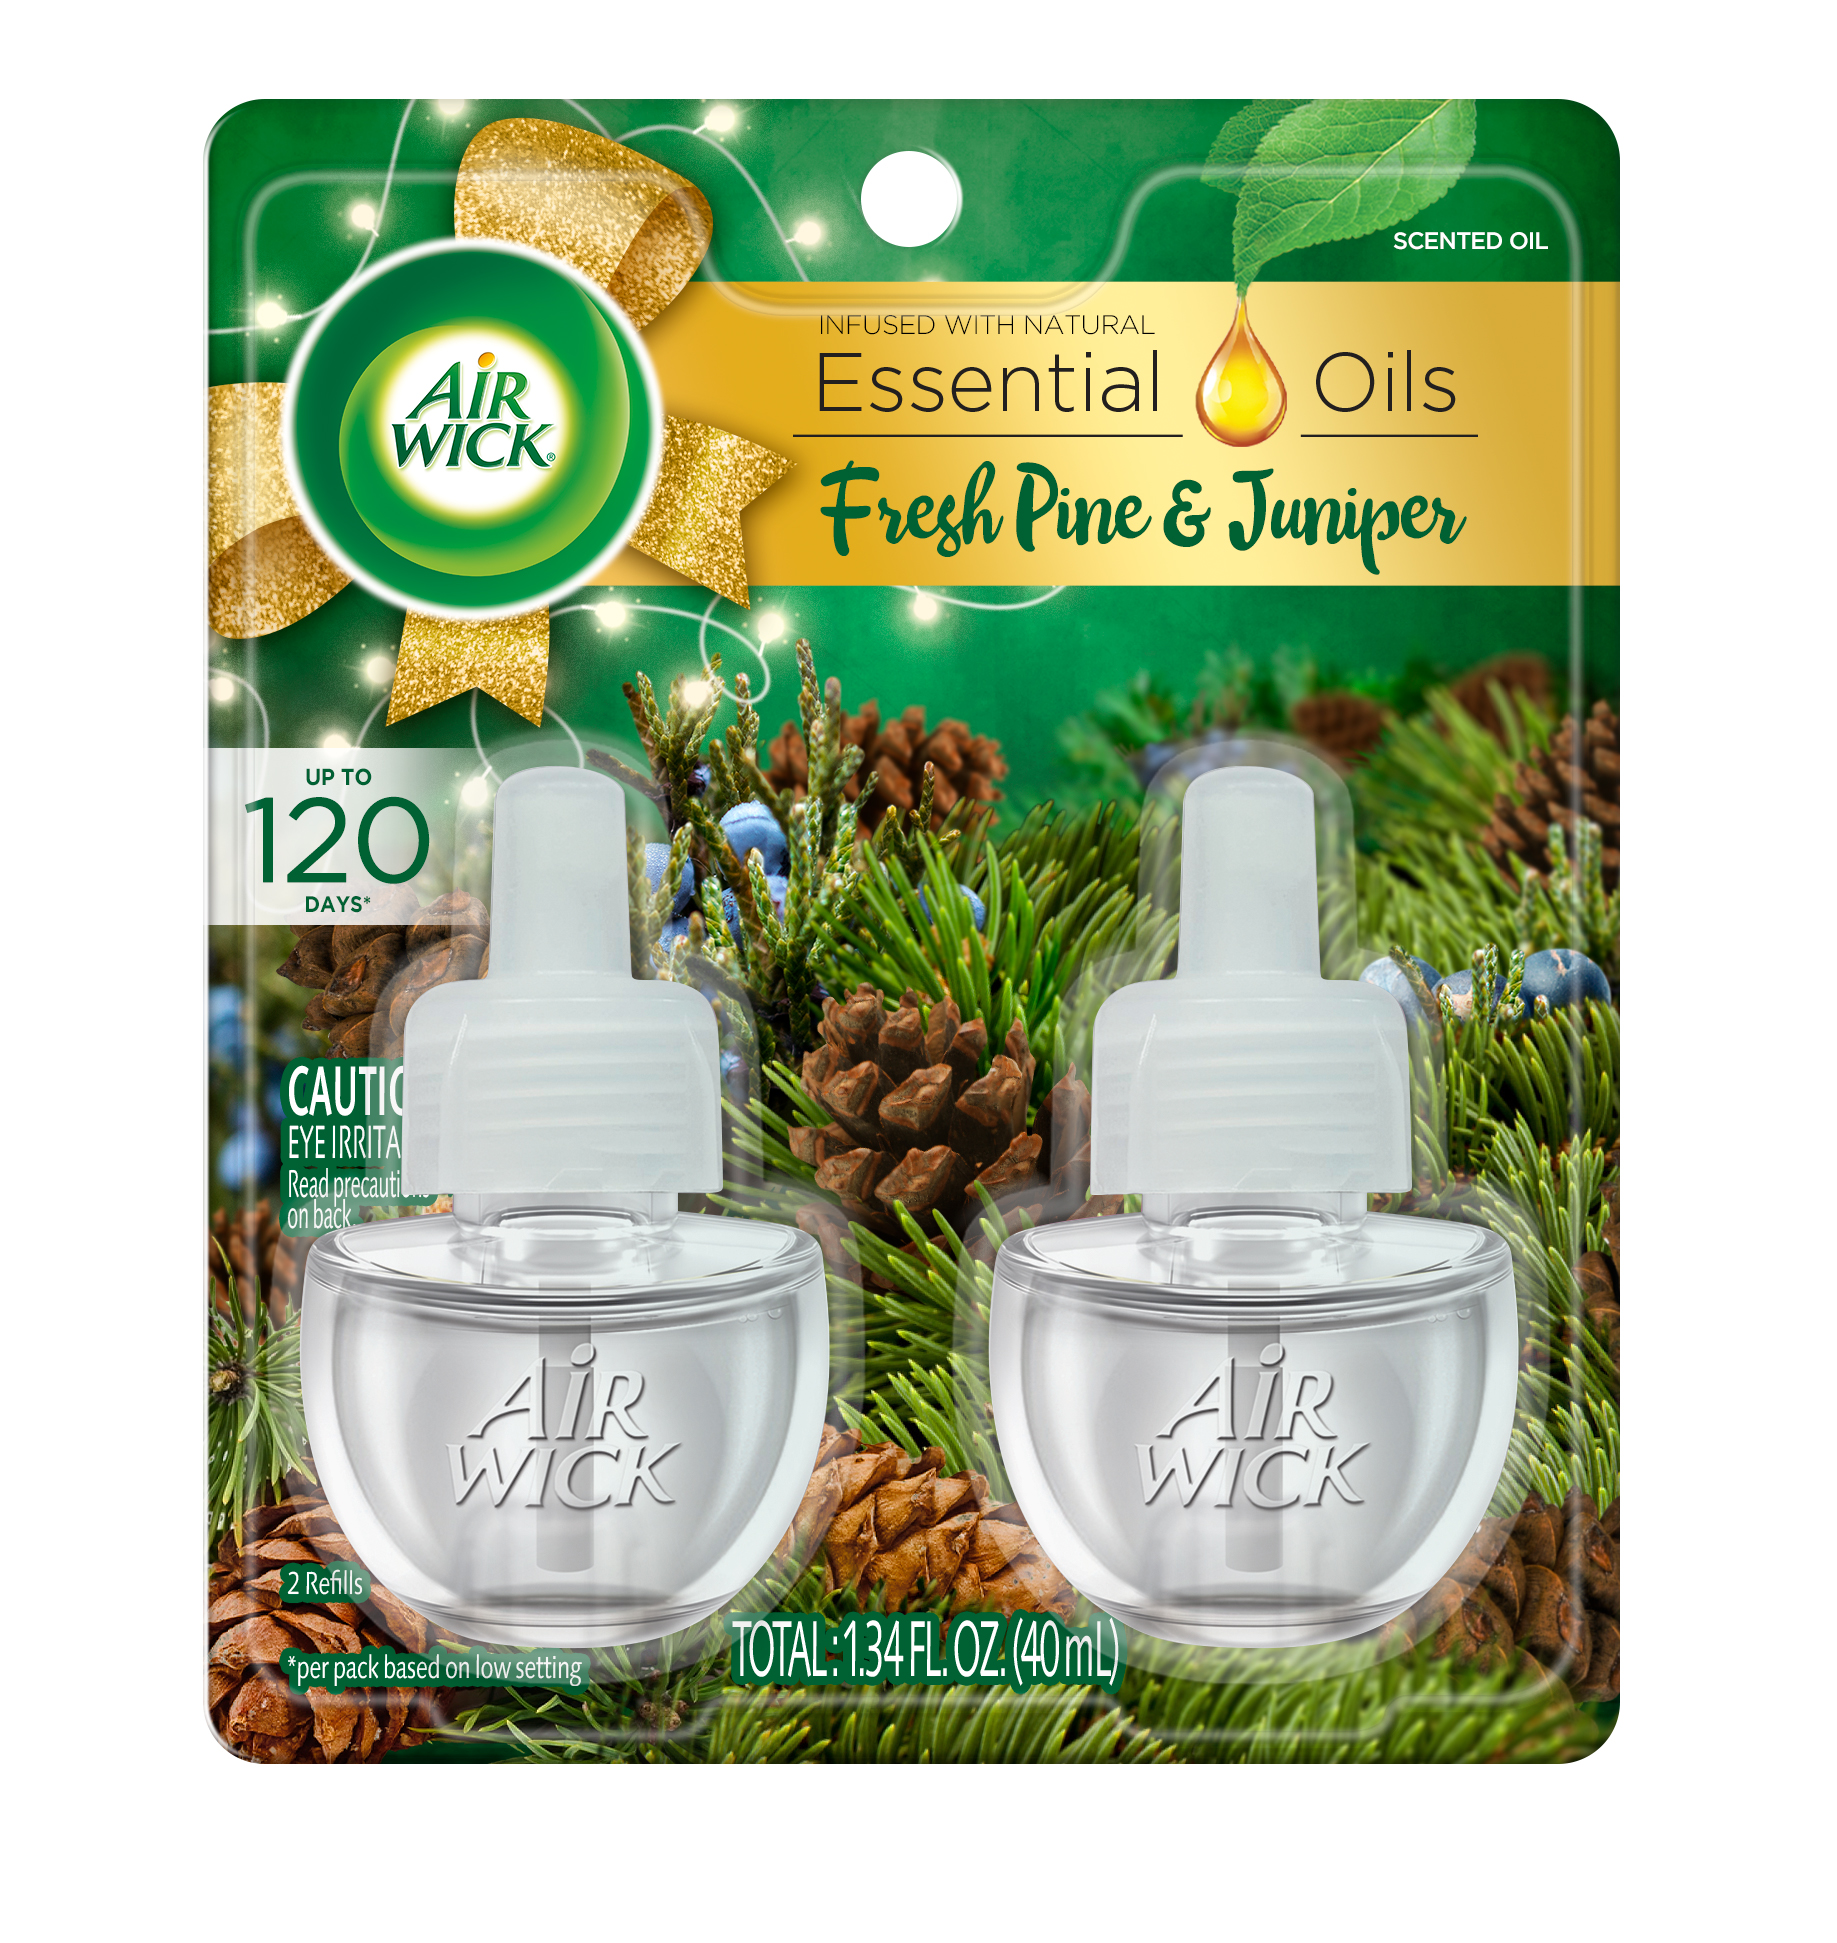 AIR WICK® Scented Oils - Fresh Pine & Juniper